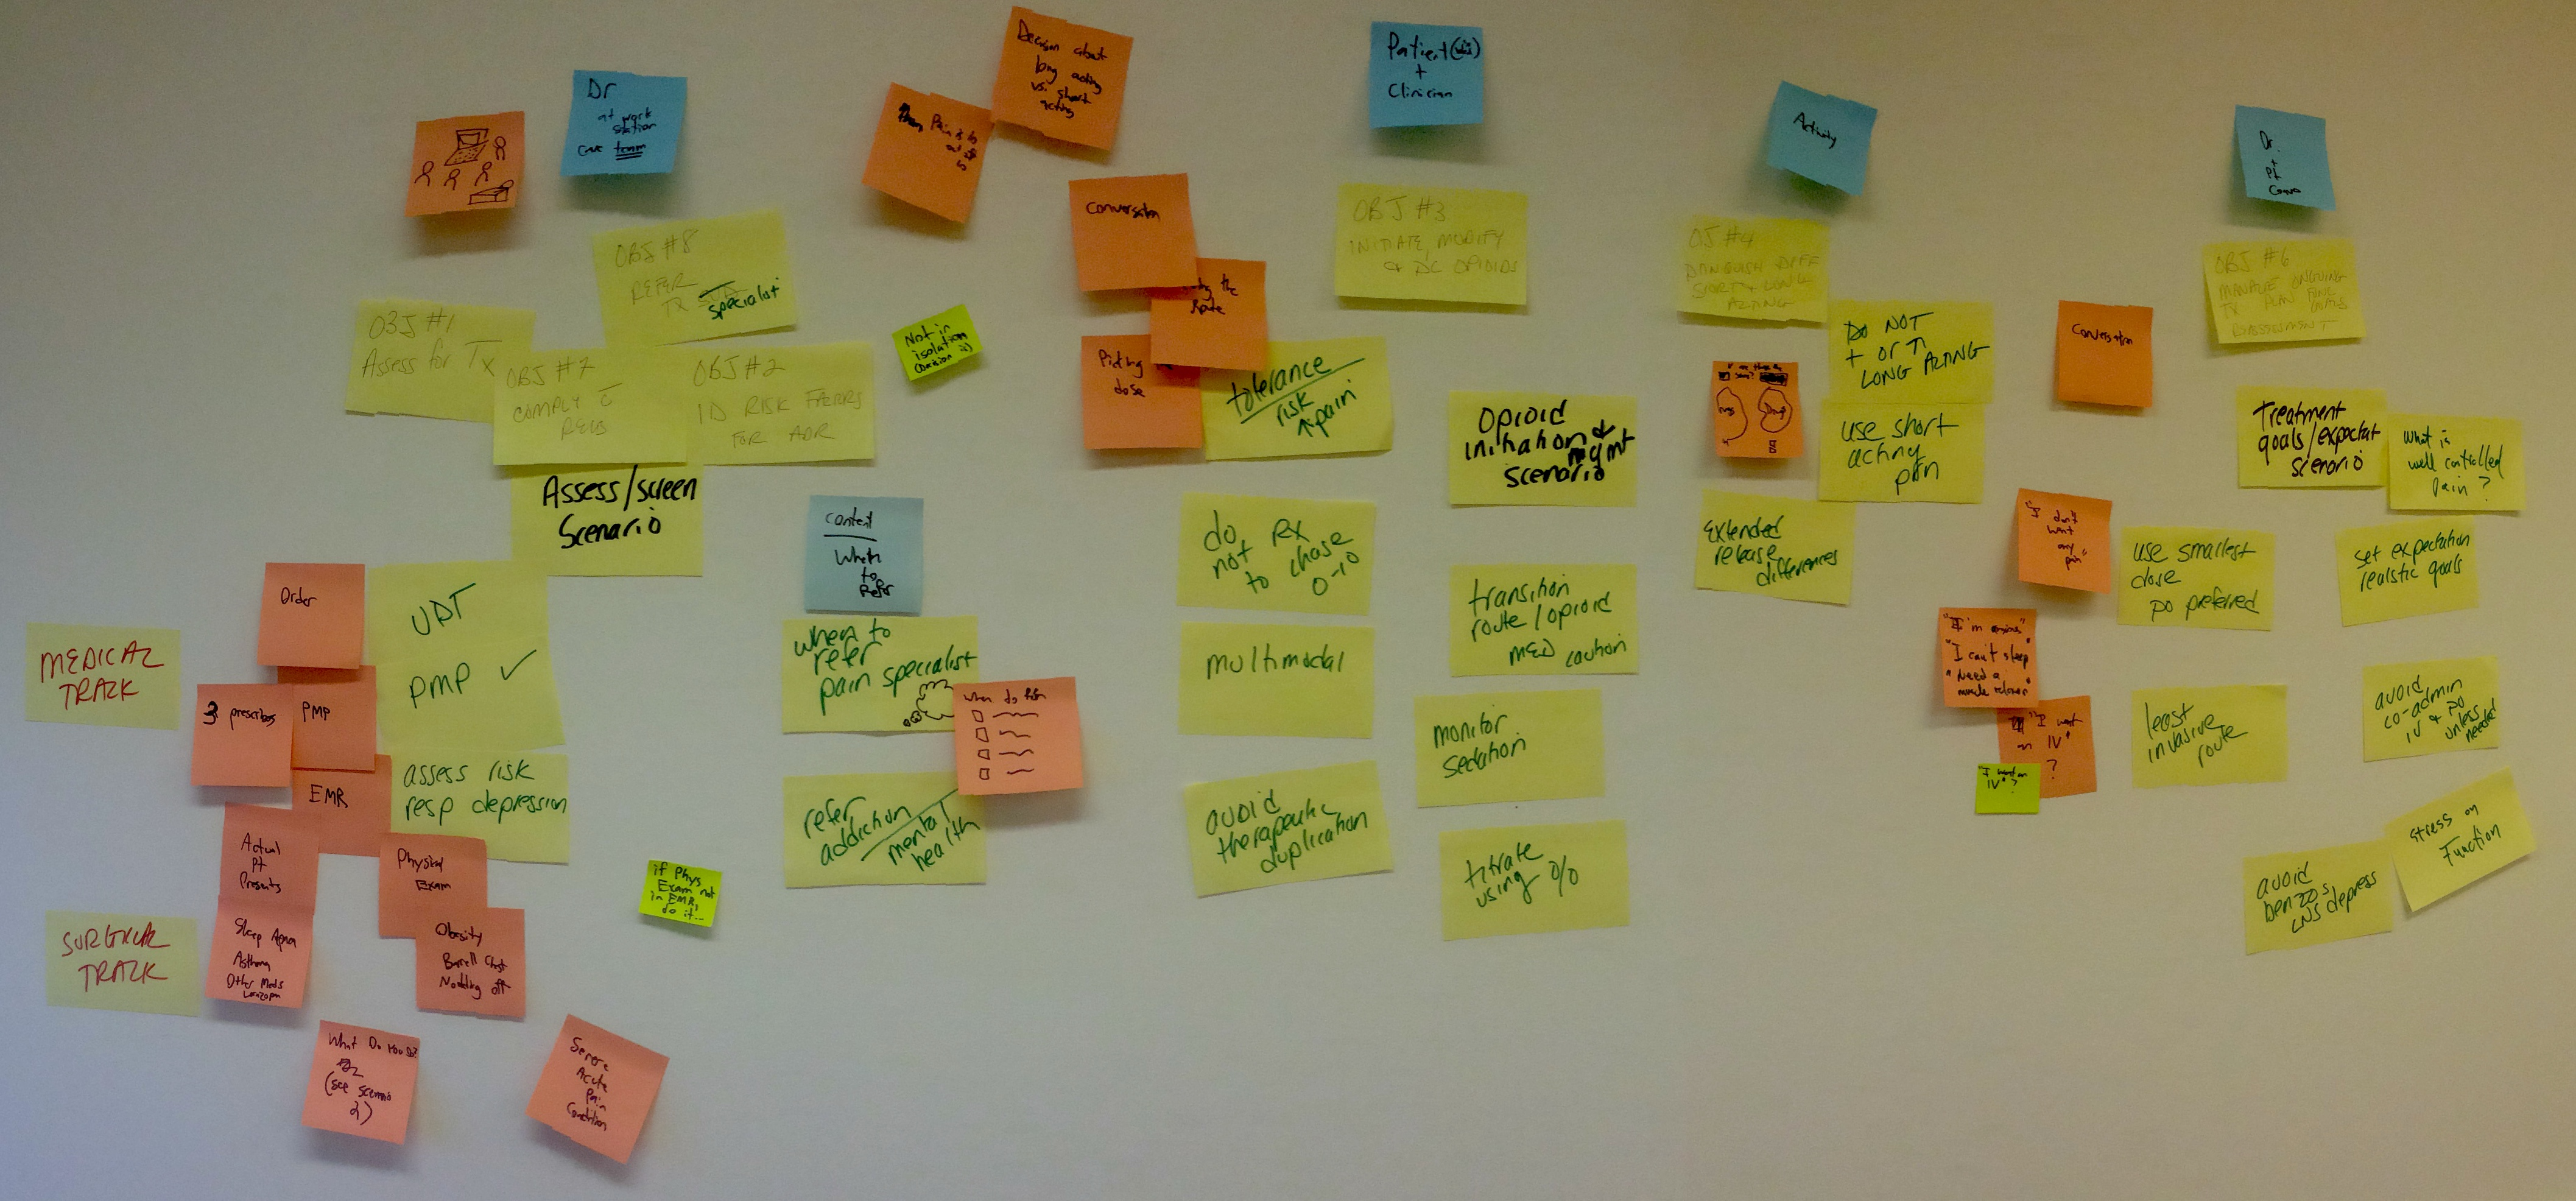 An affinity map: sticky notes of content organized into scenarios